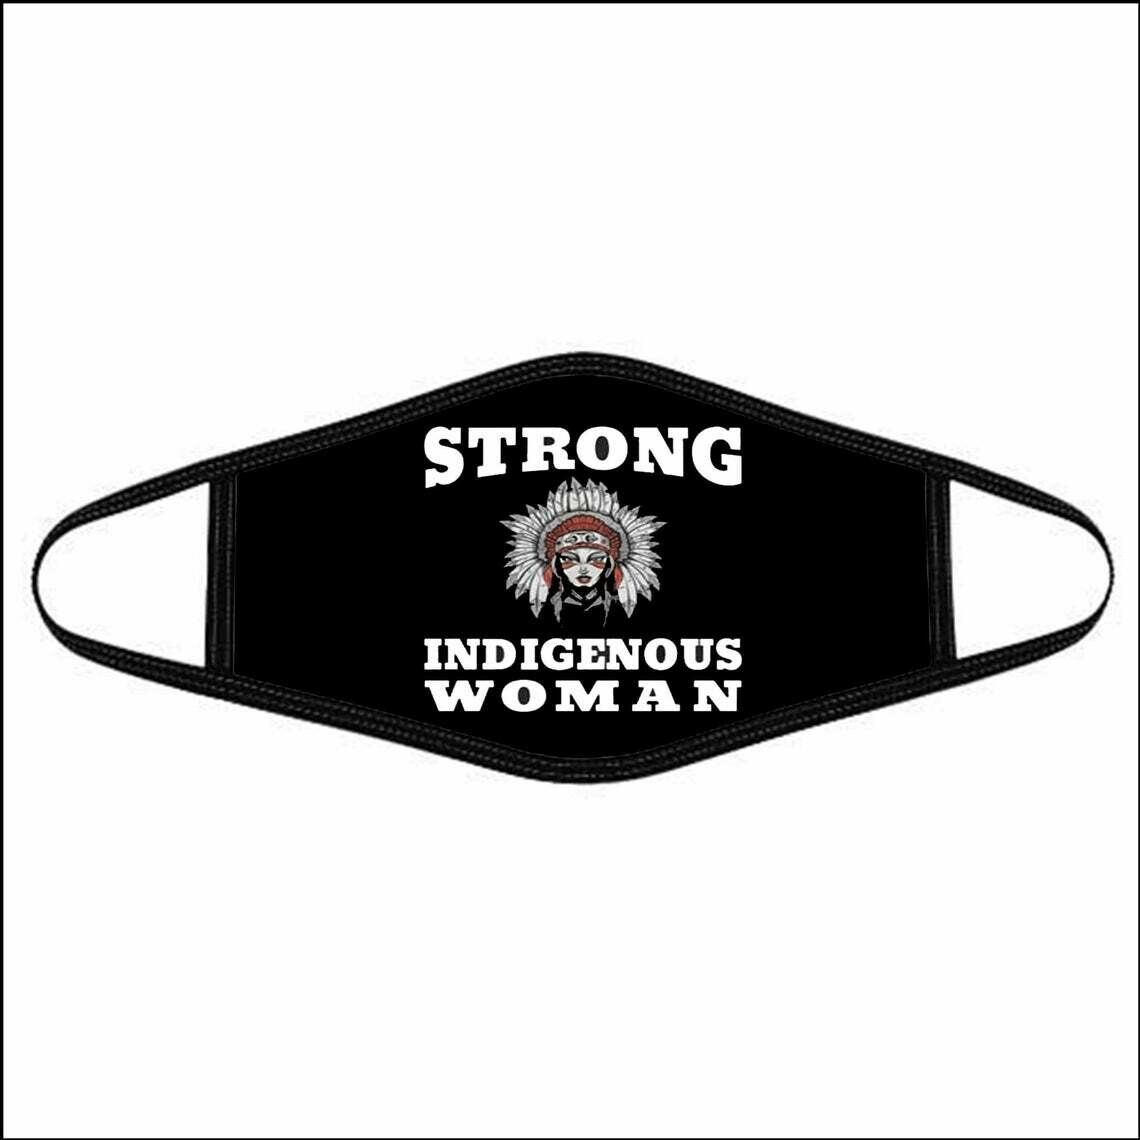 Native American Face Masks Native American Women Face Mask Strong Indigenous Women Washable Cotton Face Mask